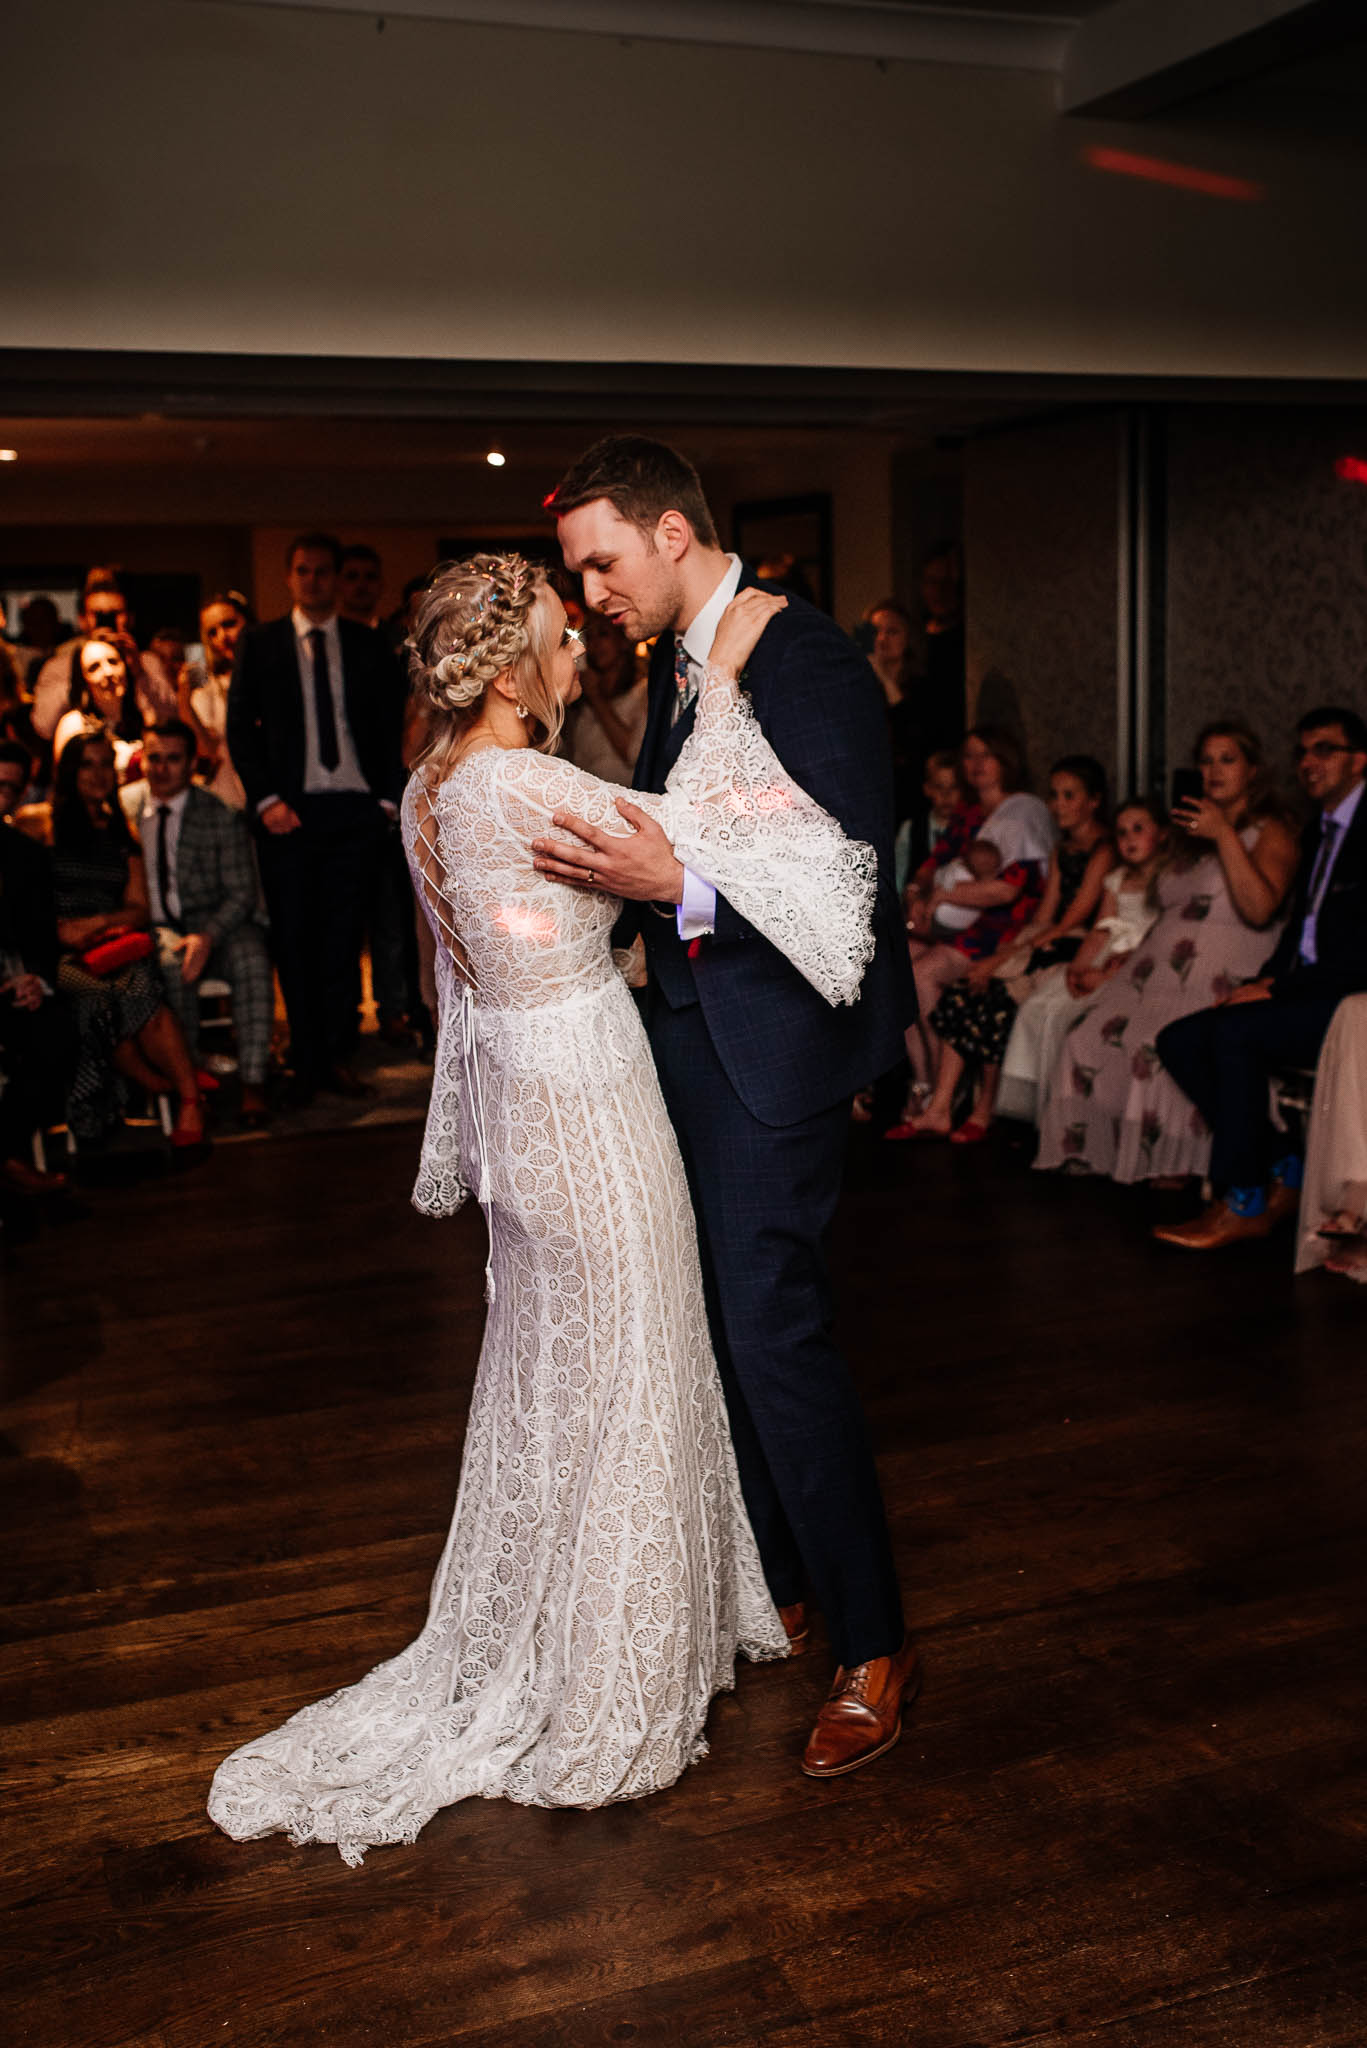 First Dance at Whirlowbrook Hall